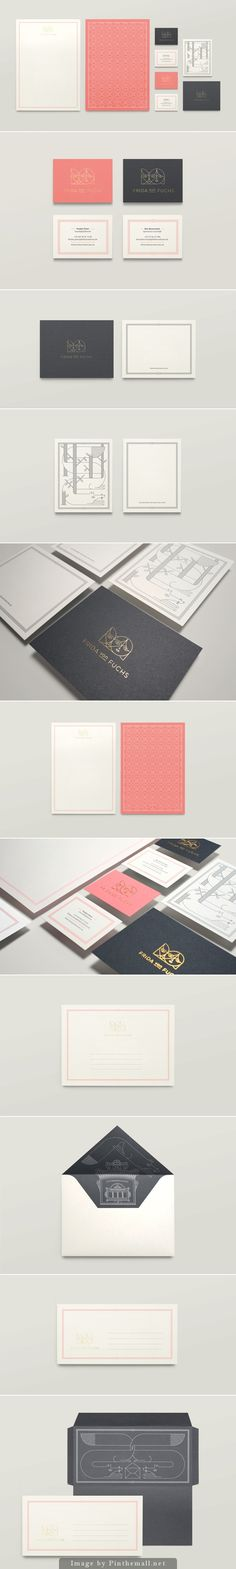 Corporate identity branding business card letterpress notebook minimal illustration vintage paper gold foil stationary grid fox graphic design